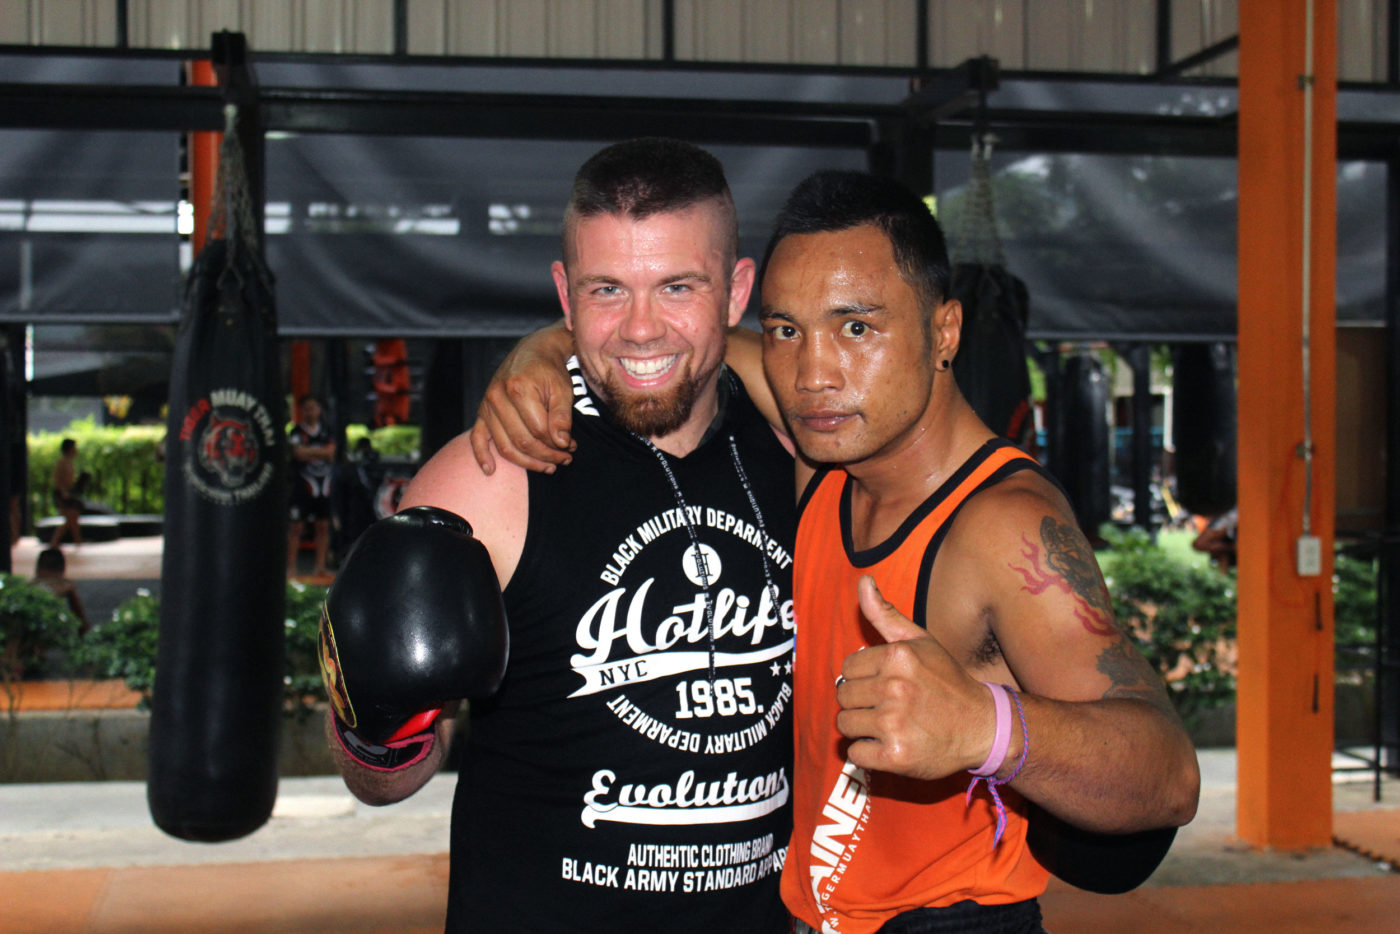 Tiger Muay Thai, Muay Thai, Thailand, Justin Och, Wrestling, Combat, Ring Fighting, Wing Chun